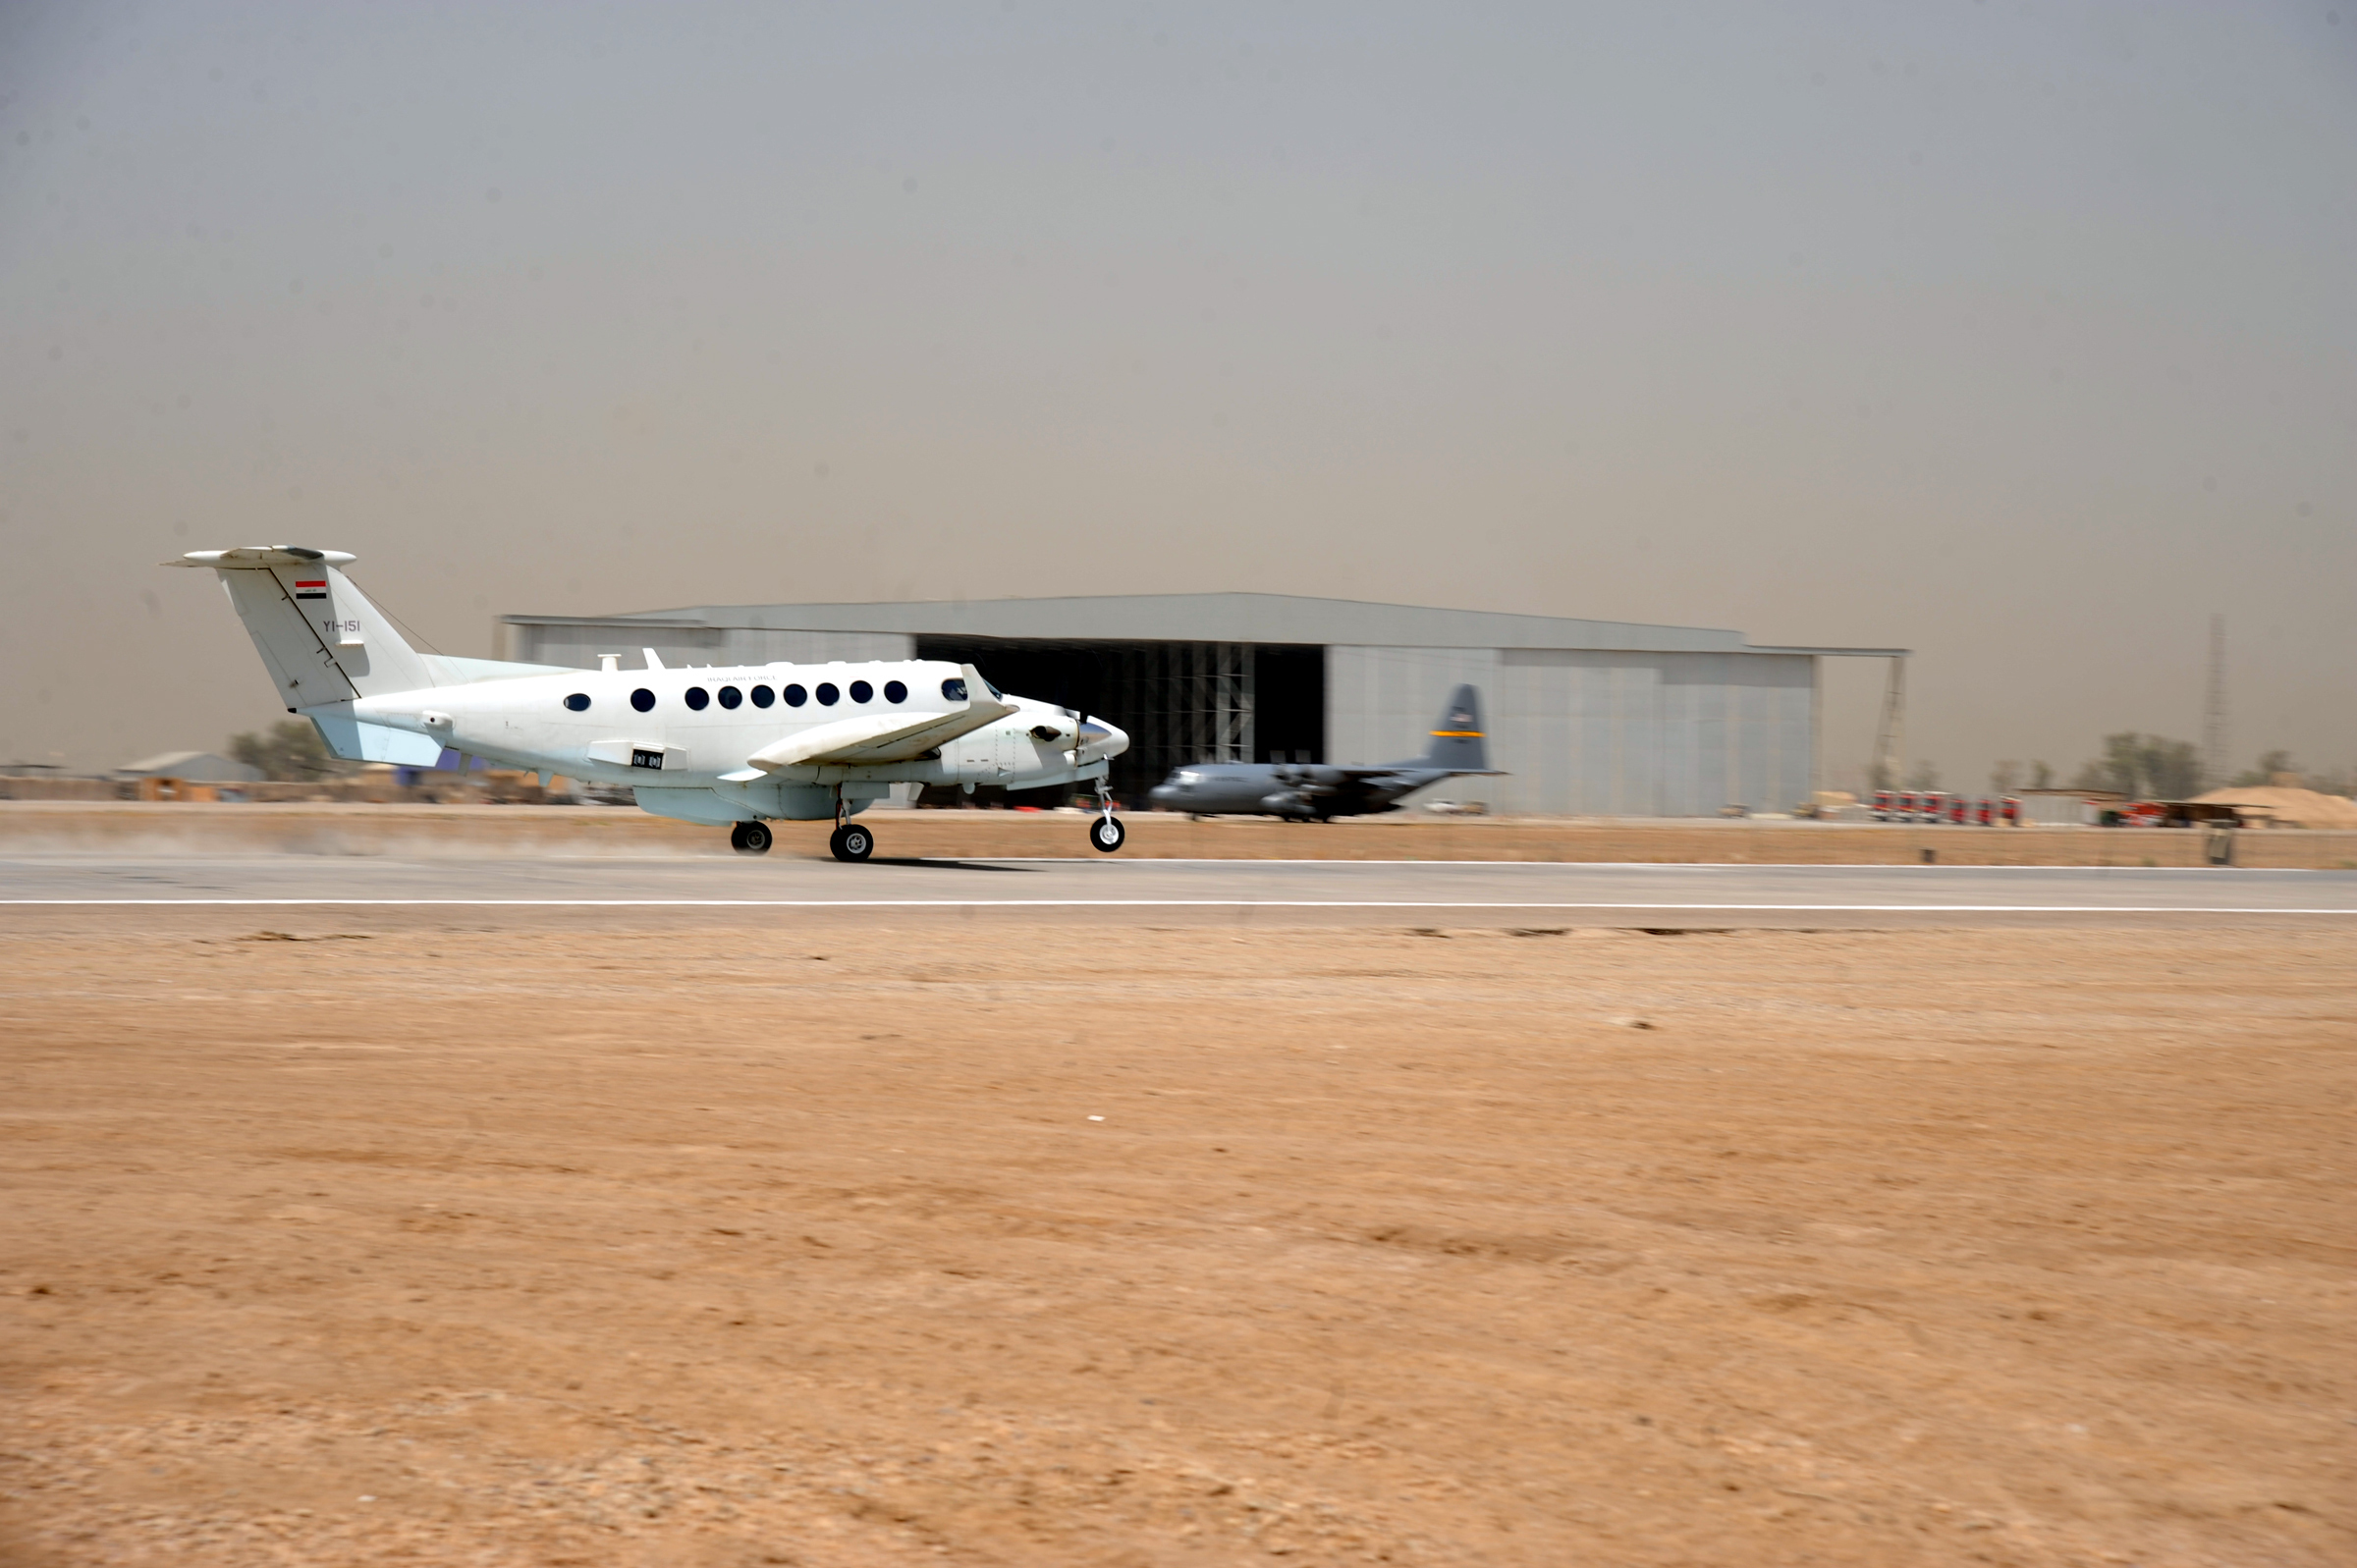 Sather renovates runway, paves way for Iraq's future DVIDS182456.jpg English: An Iraqi king air 300 takes off on a newly refurbished runway